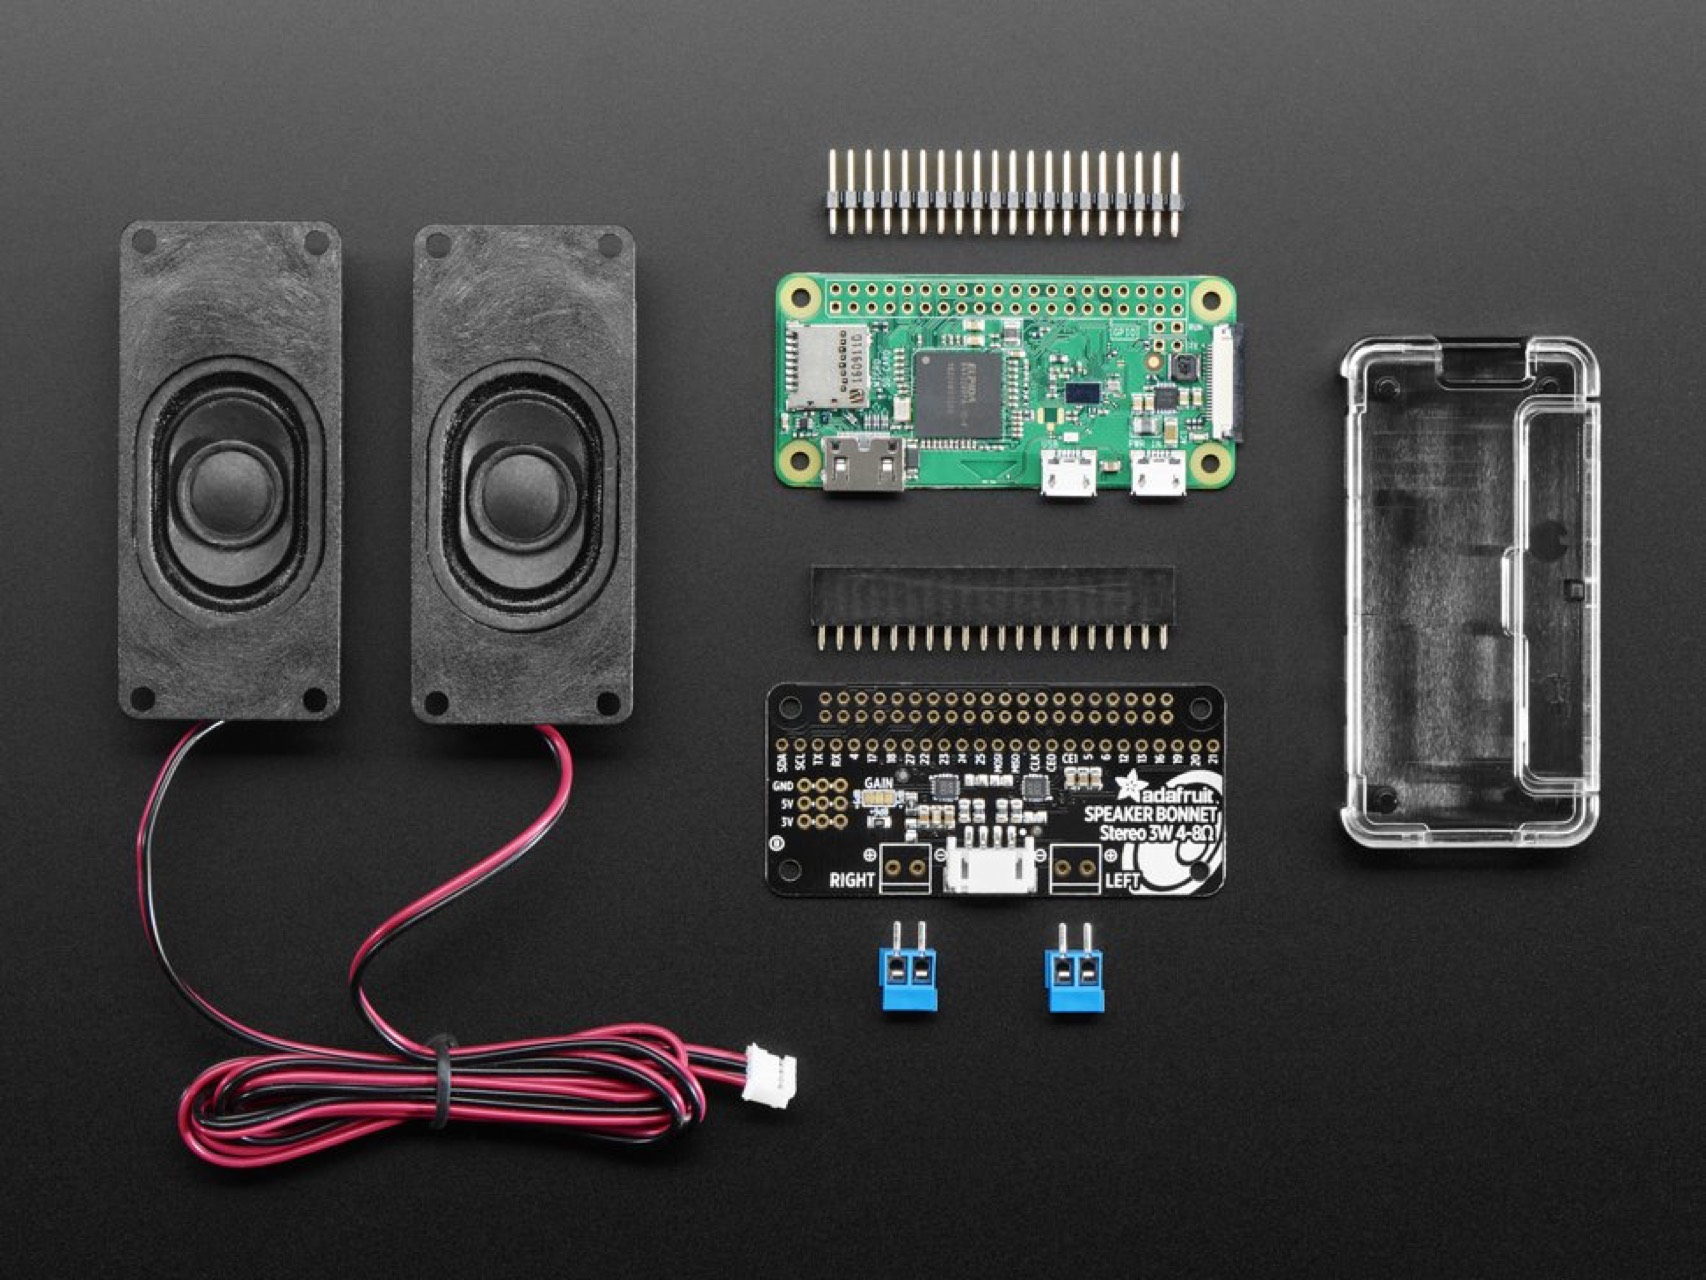 Raspberry pi zero w project kit